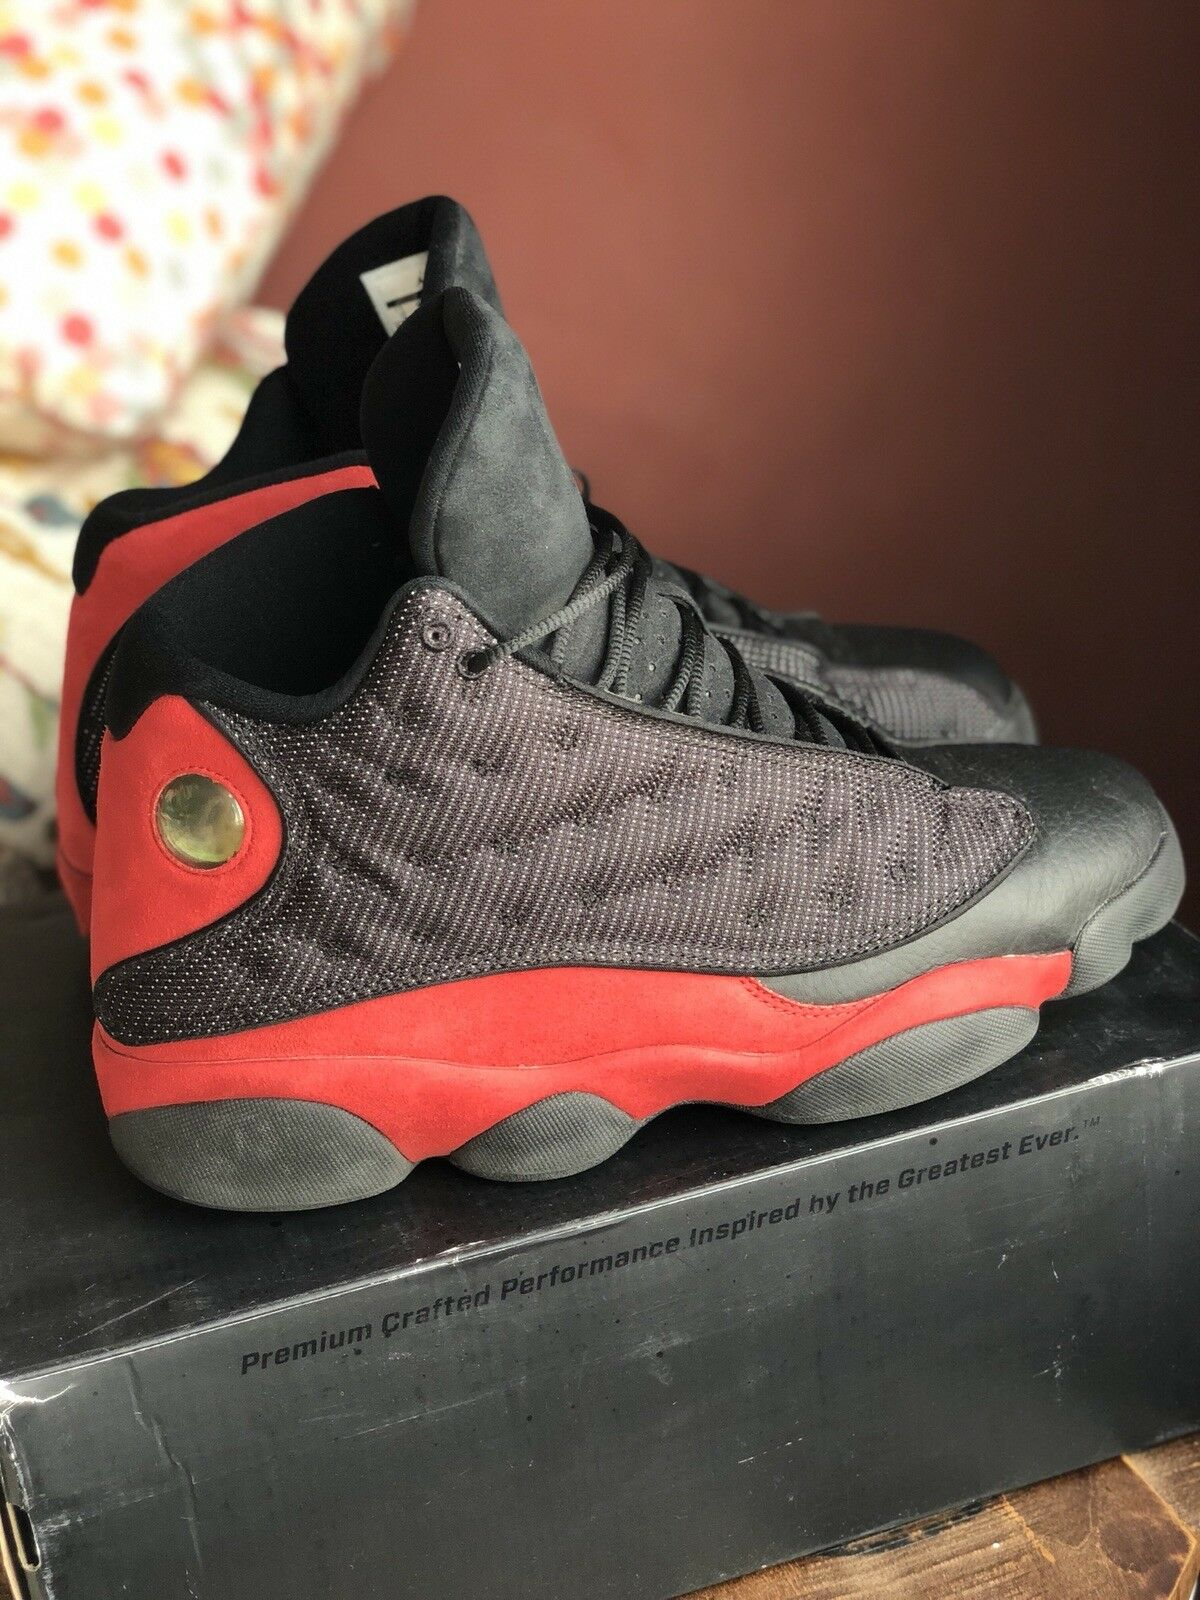 hot sales 9a087 14cbb Nike Air Jordan 13 13 13 Bred 13 Shoes - Size 12 - Slightly Used With